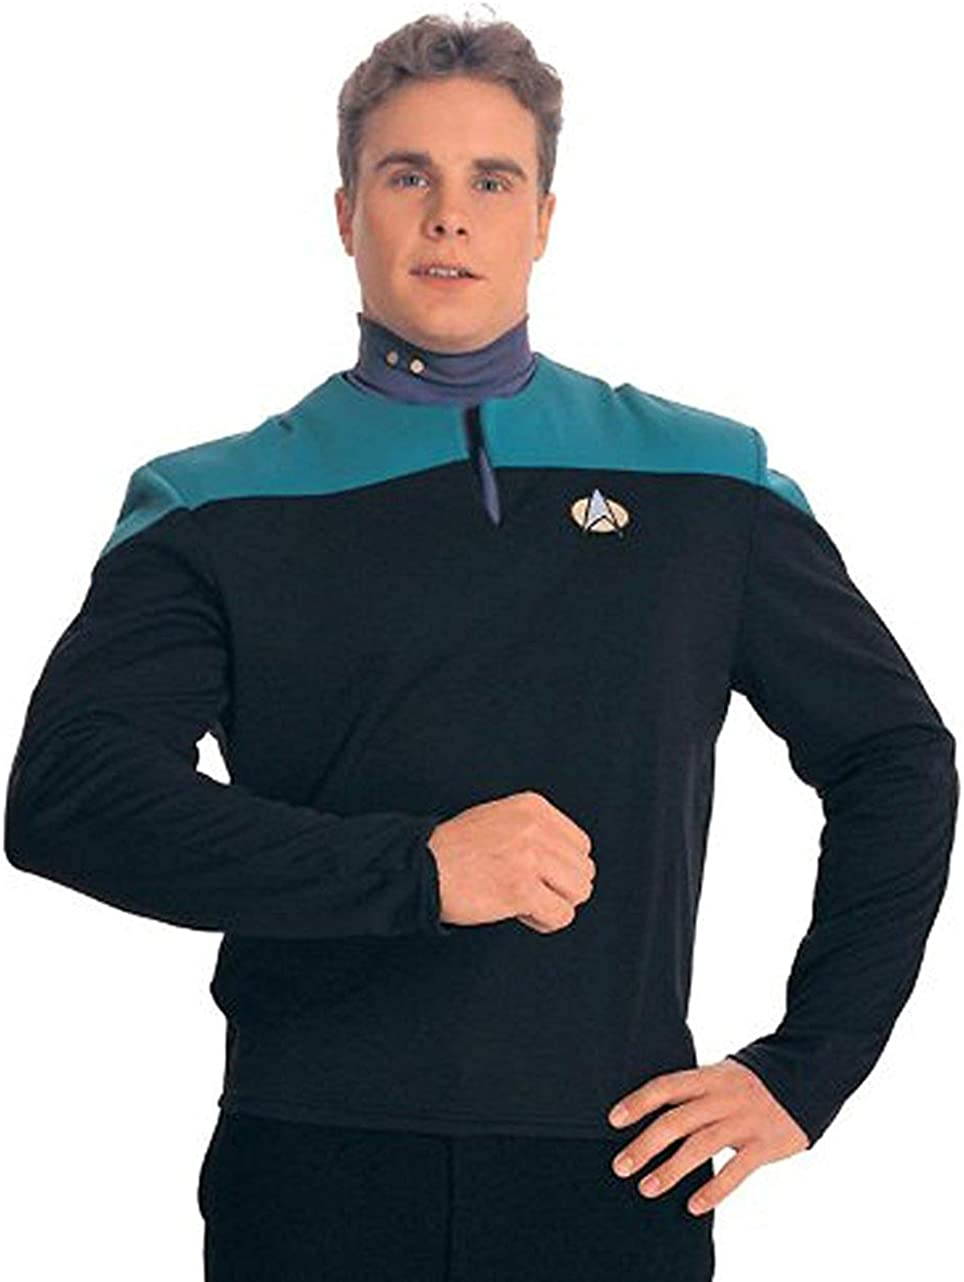 Star Trek Deep Space Nine Adult Uniform Costumes Shirt (Teal) M